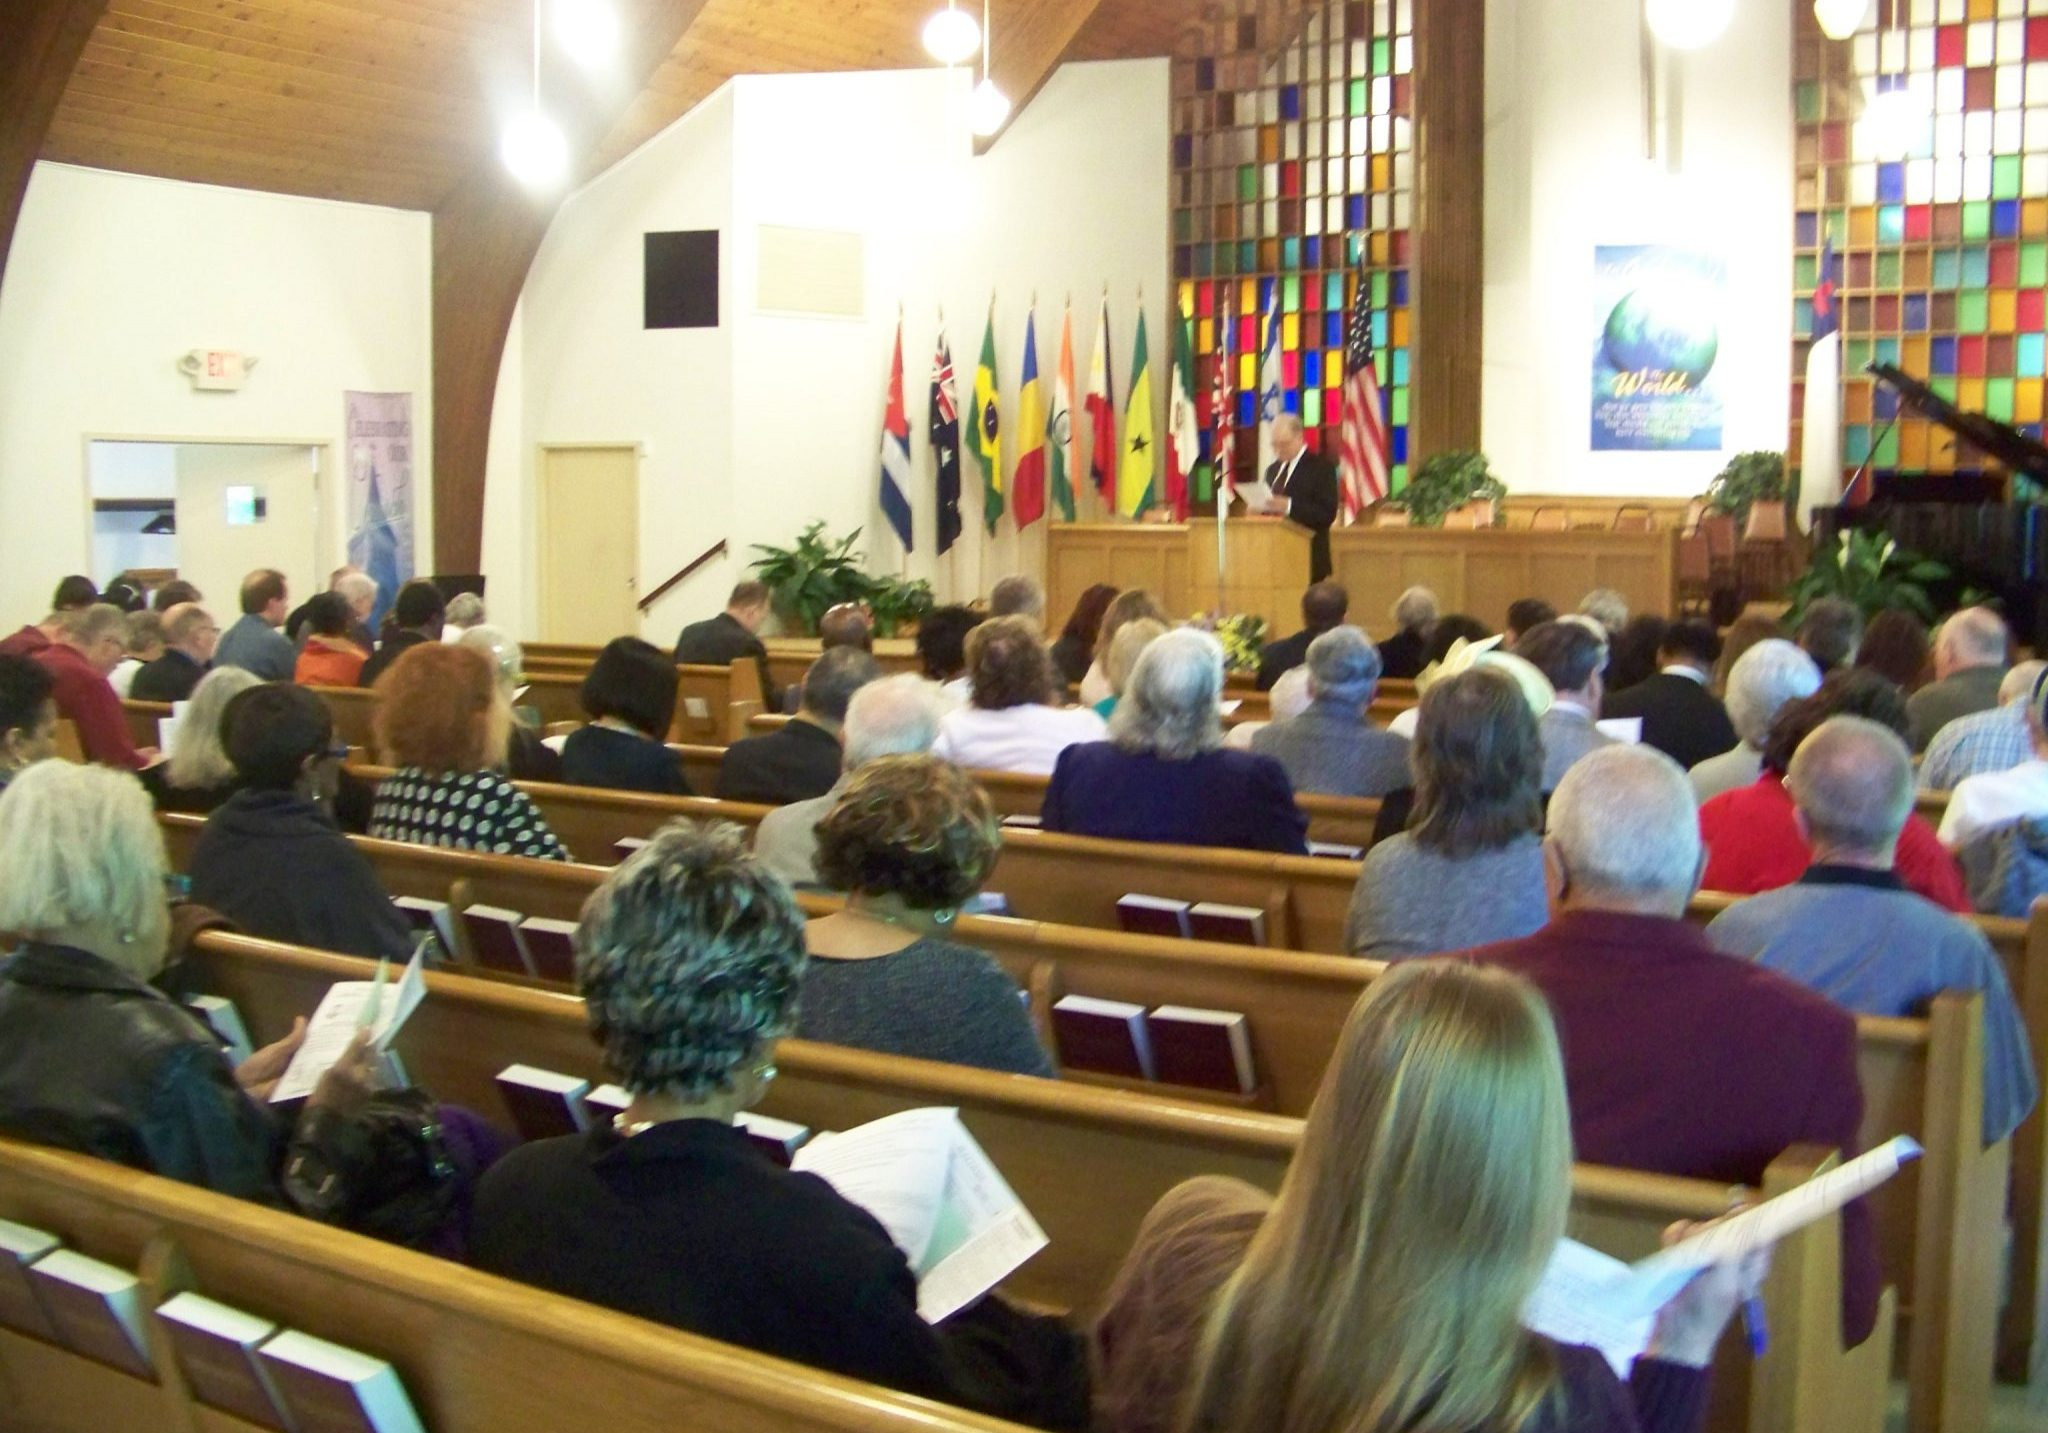 Carol Rusnacko - # Church service